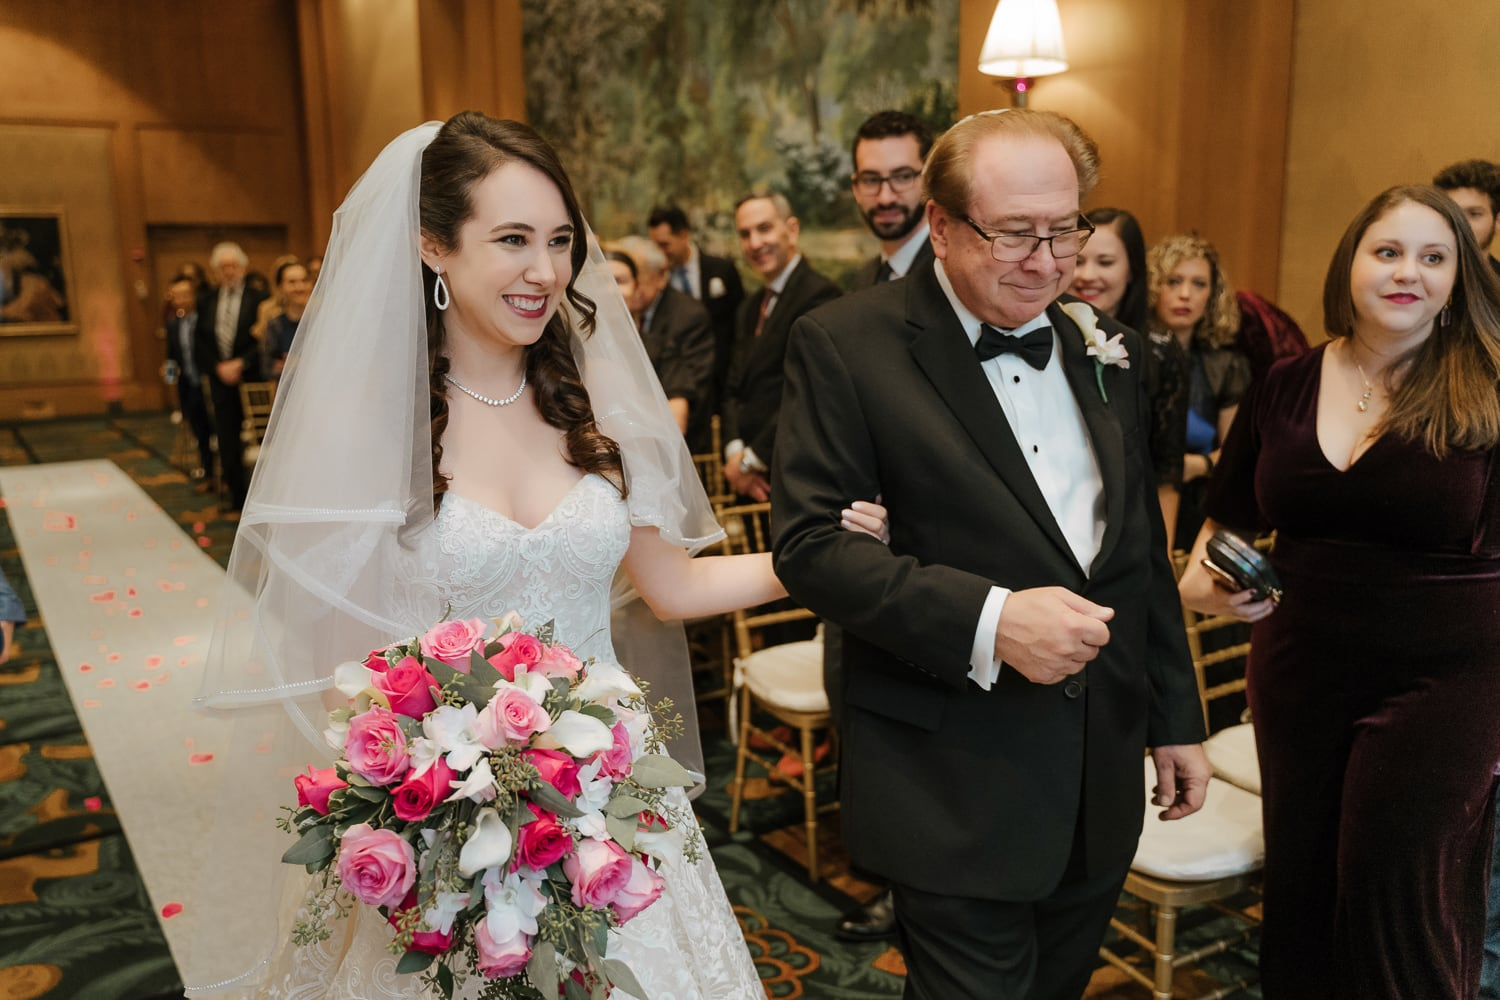 A bride and her father walking during the wedding ceremony